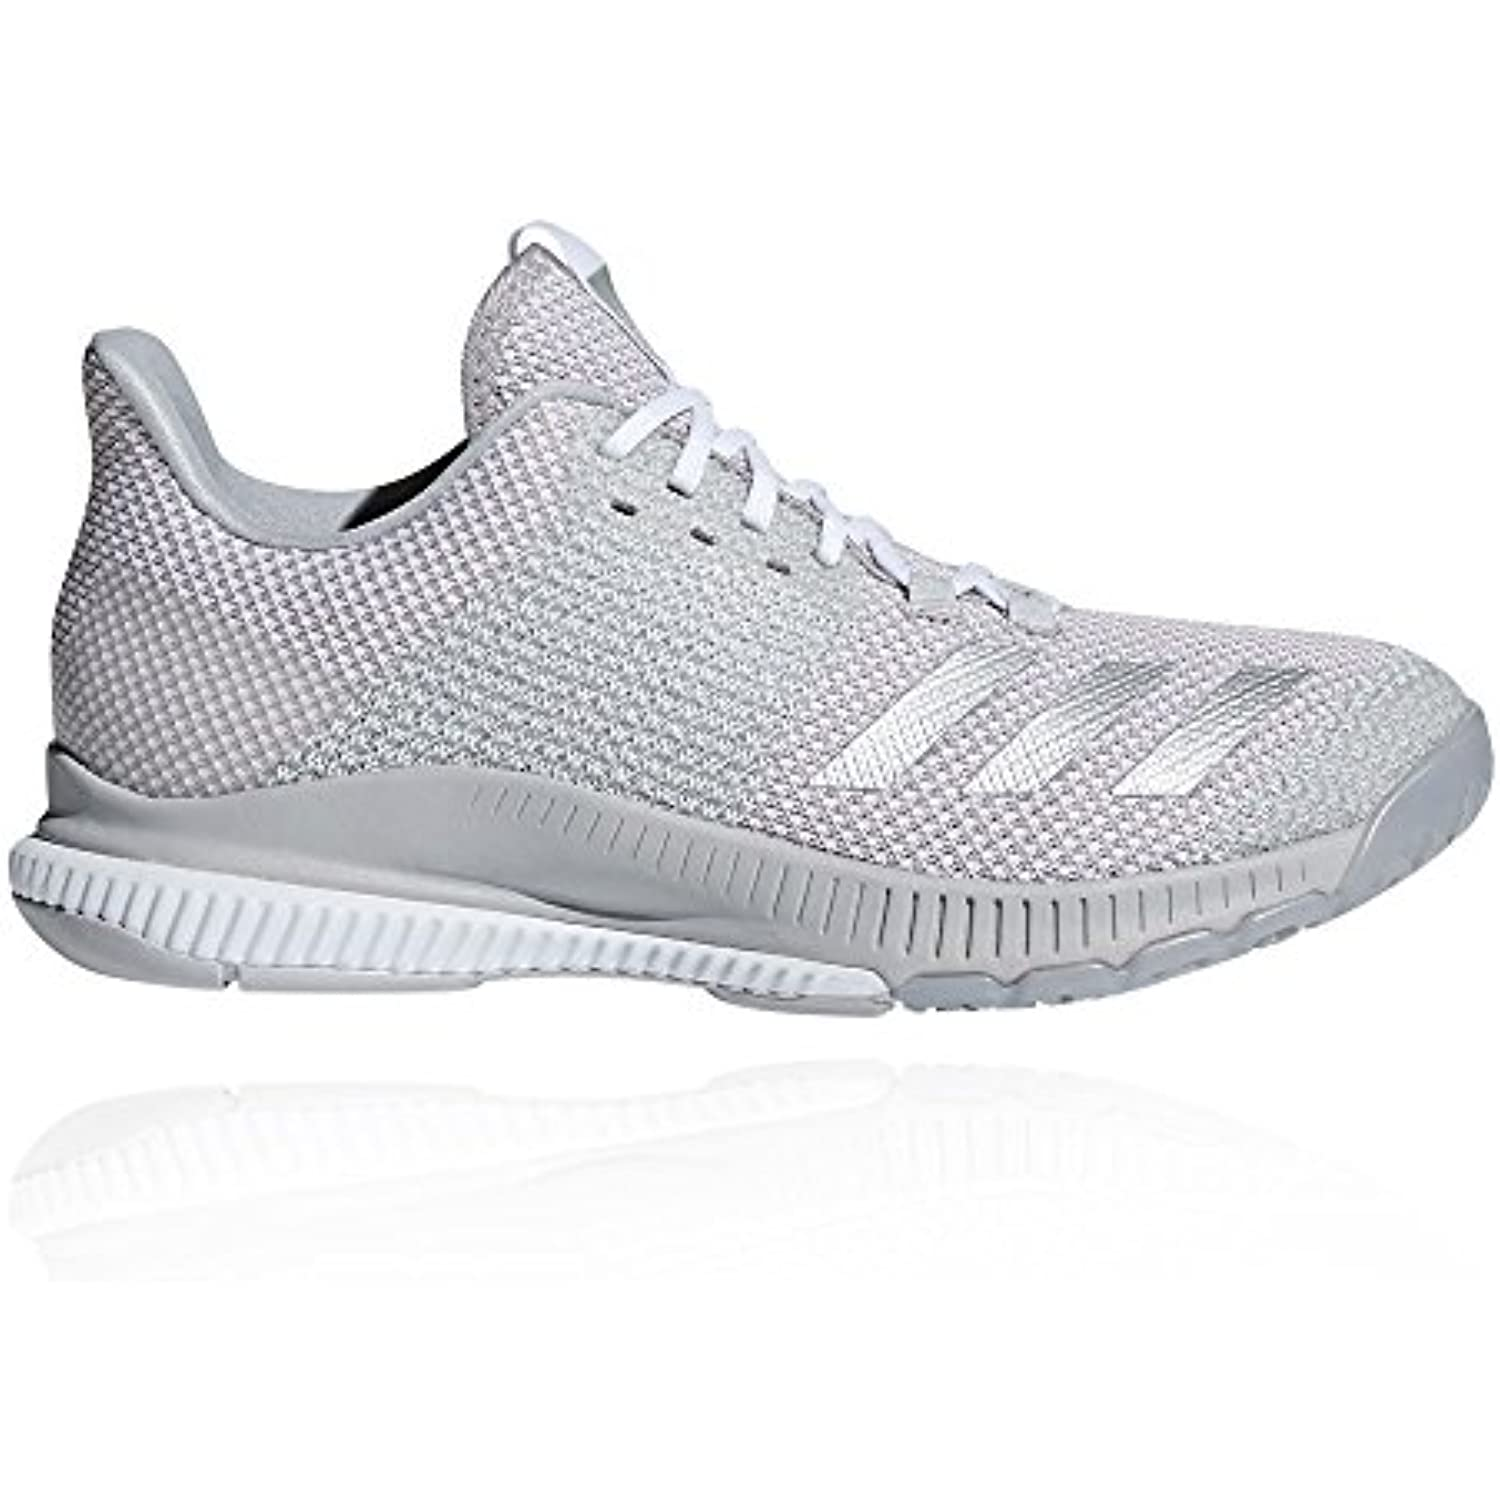 huge discount 7e970 a0cf3 Volleyball Crazyflight Chaussures Adidas Bounce B07dfgjpp9 De 2 64xaggqCHY